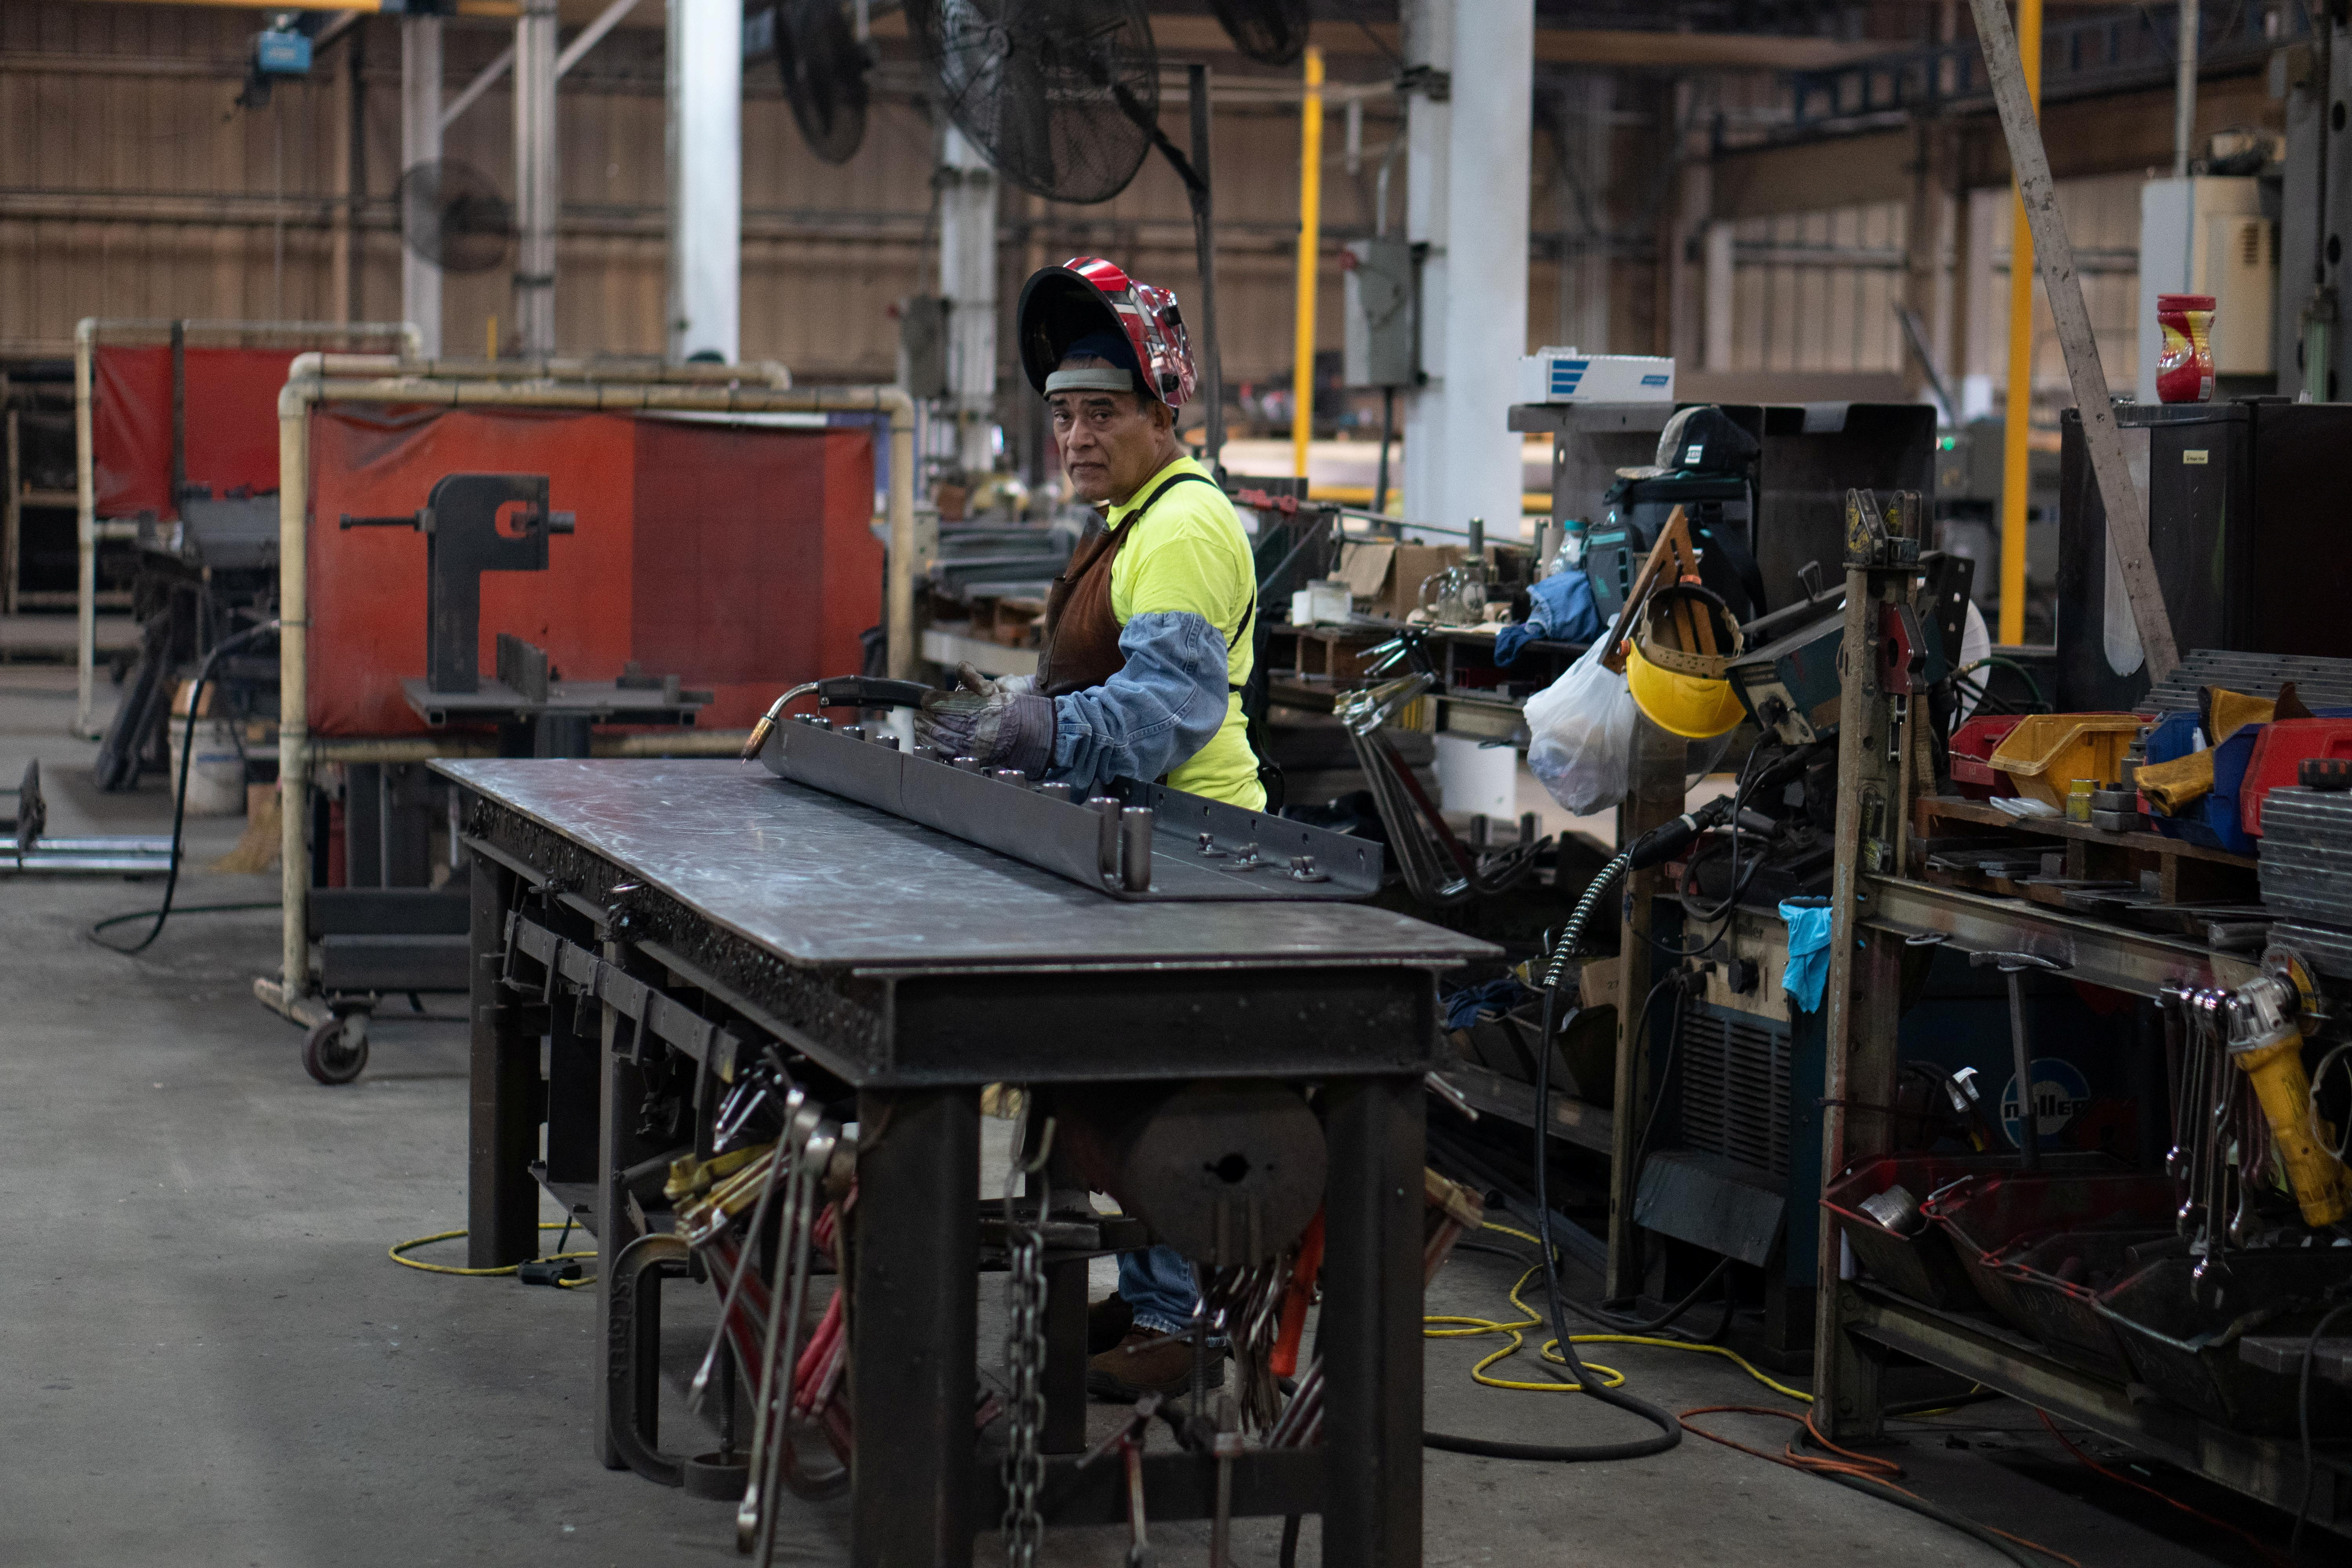 A worker welds a screed wear plate at the Calder Brothers' facility in Taylors, South Carolina, U.S., July 19, 2021. Picture taken July 19, 2021. Brandon Granger/Calder Brothers Corporation/Handout via REUTERS